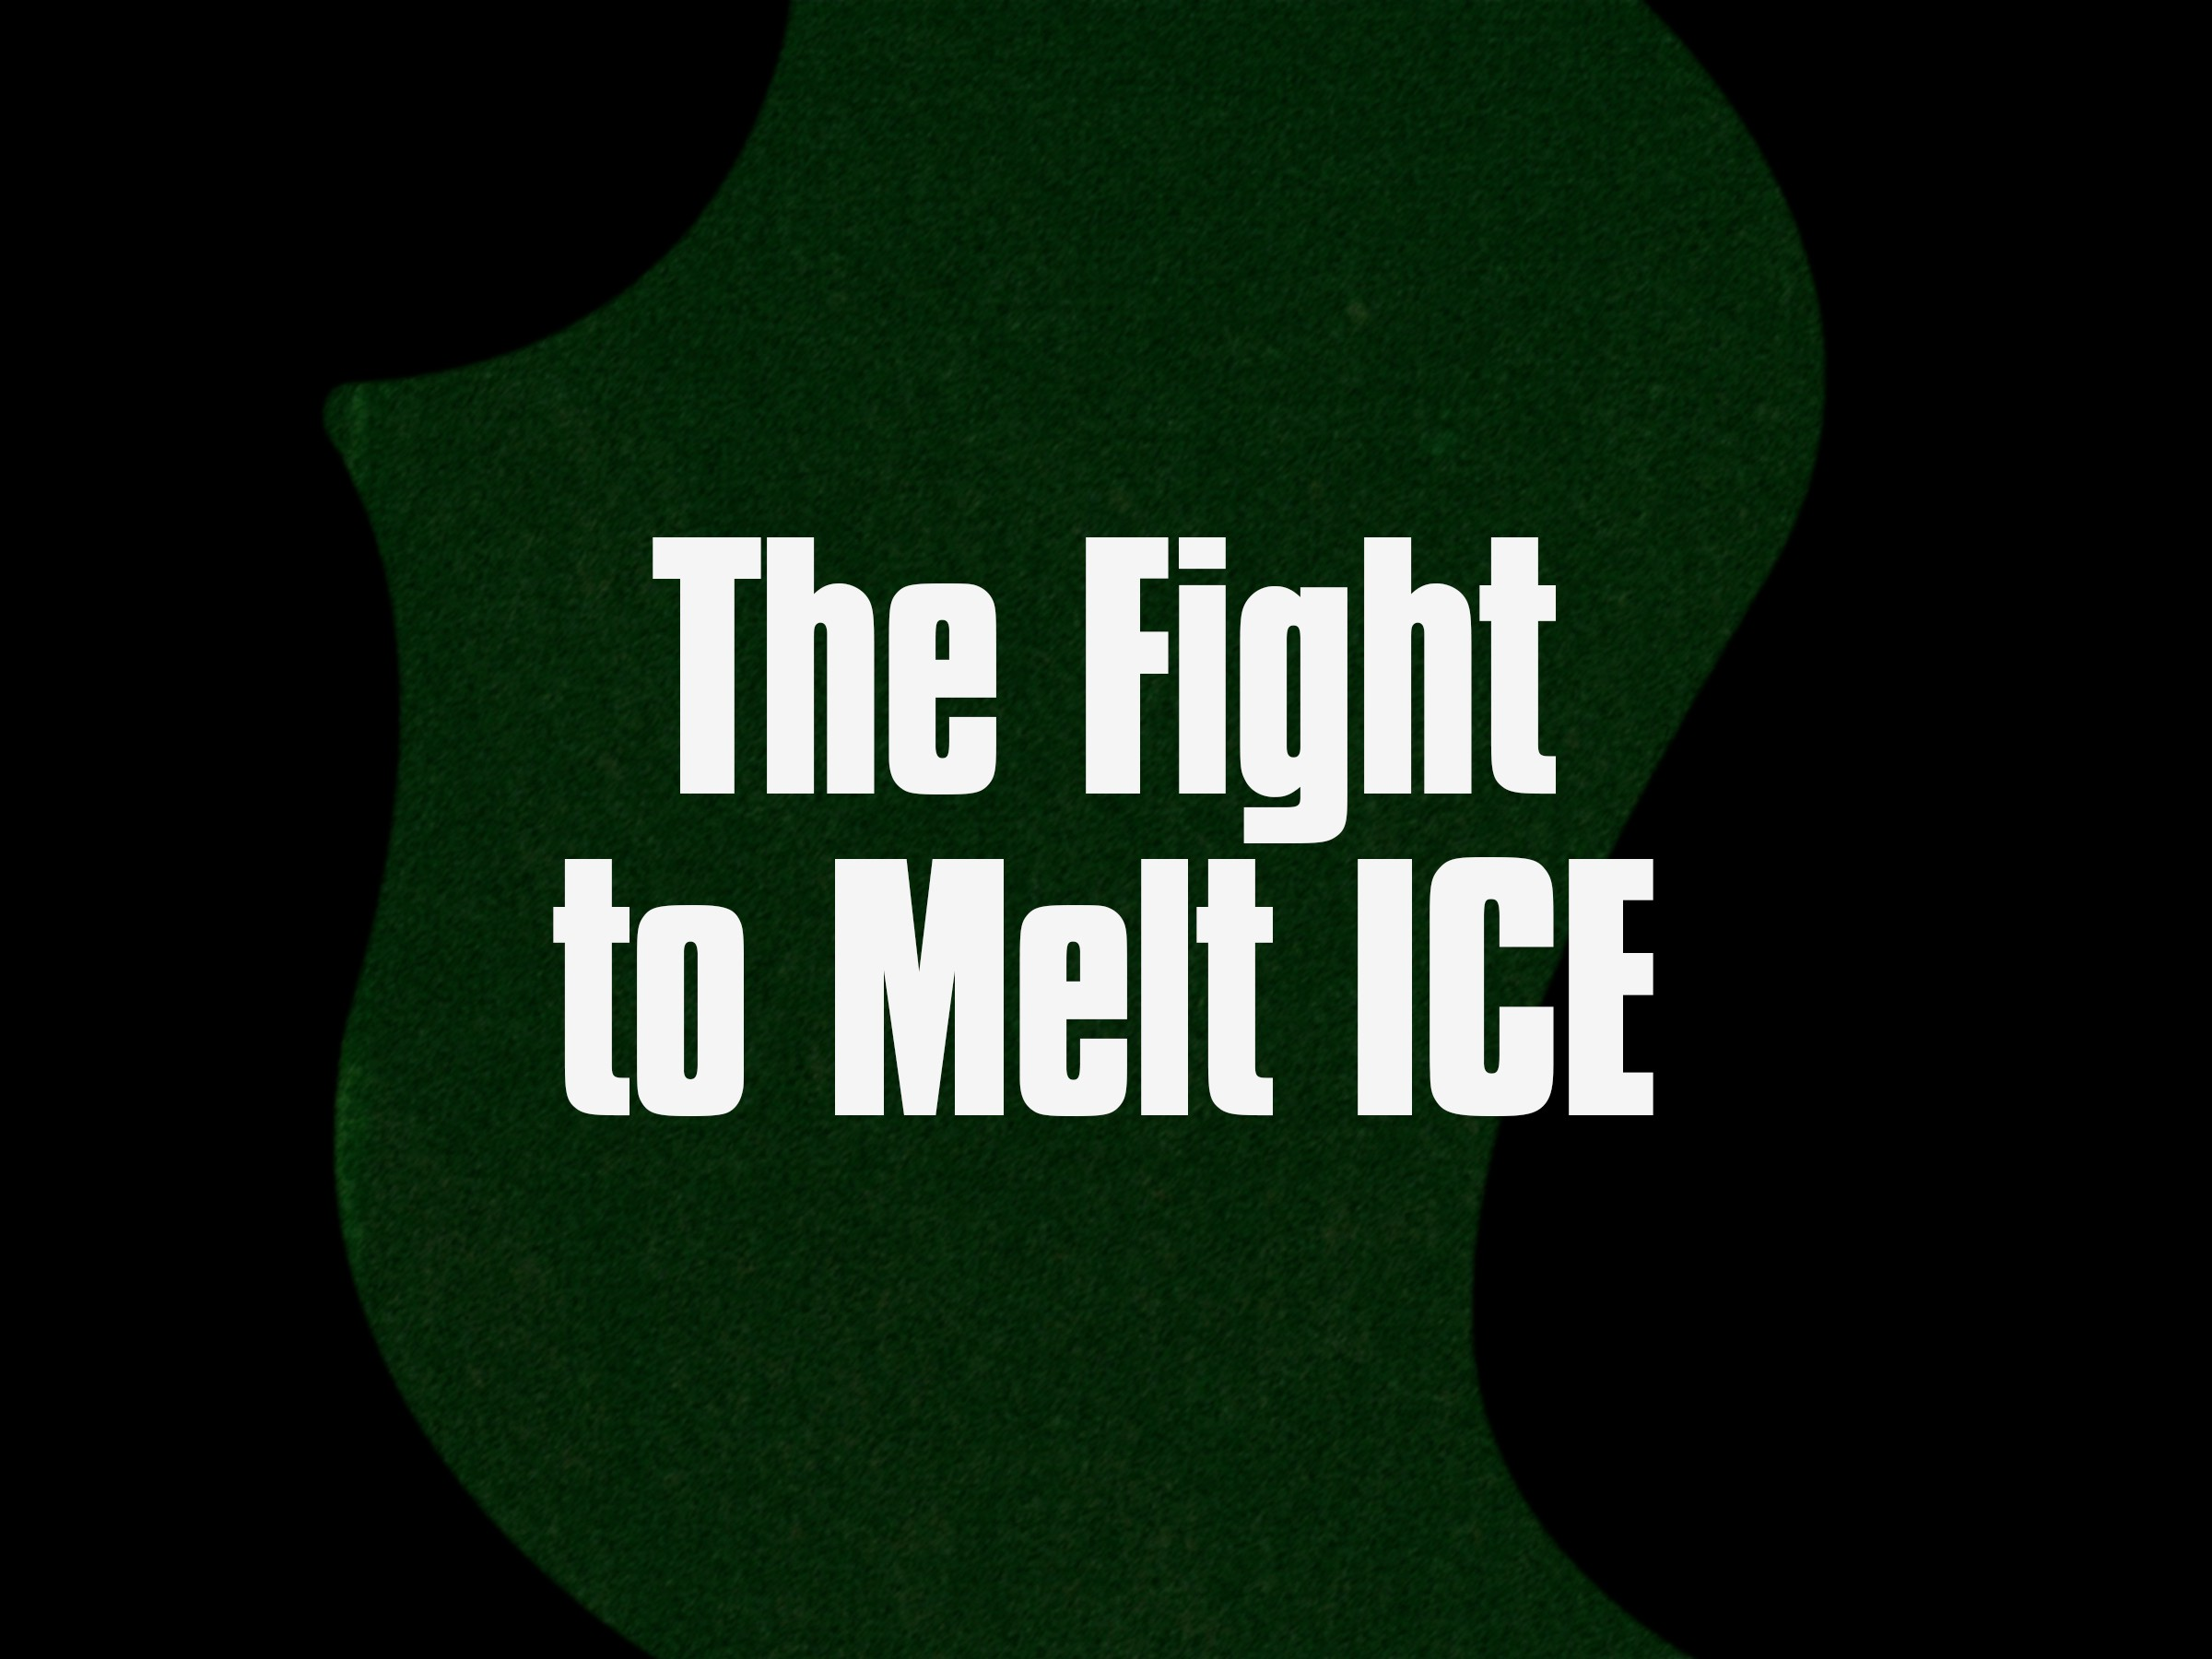 The Fight to Melt ICE